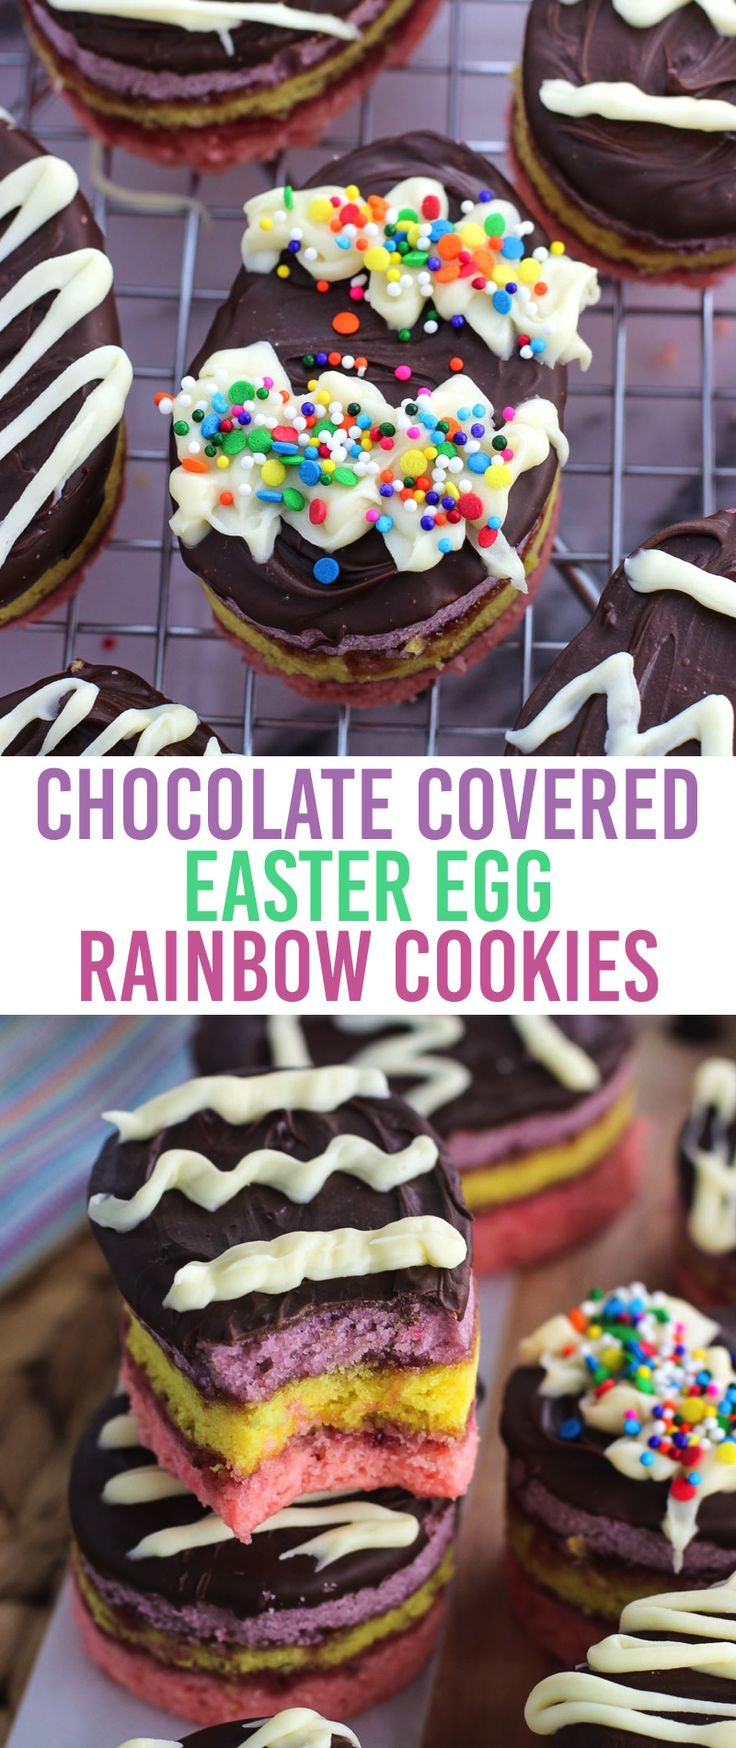 Enjoy rainbow cookies (or tricolor cookies, or seven layer cookies...) for Easter with these Chocolate-Covered Easter Egg Rainbow Cookies! The classic dessert of spongy almond layers and raspberry jam is updated with spring colors, egg shapes, and Easter egg decorations. A festive Easter dessert recipe!